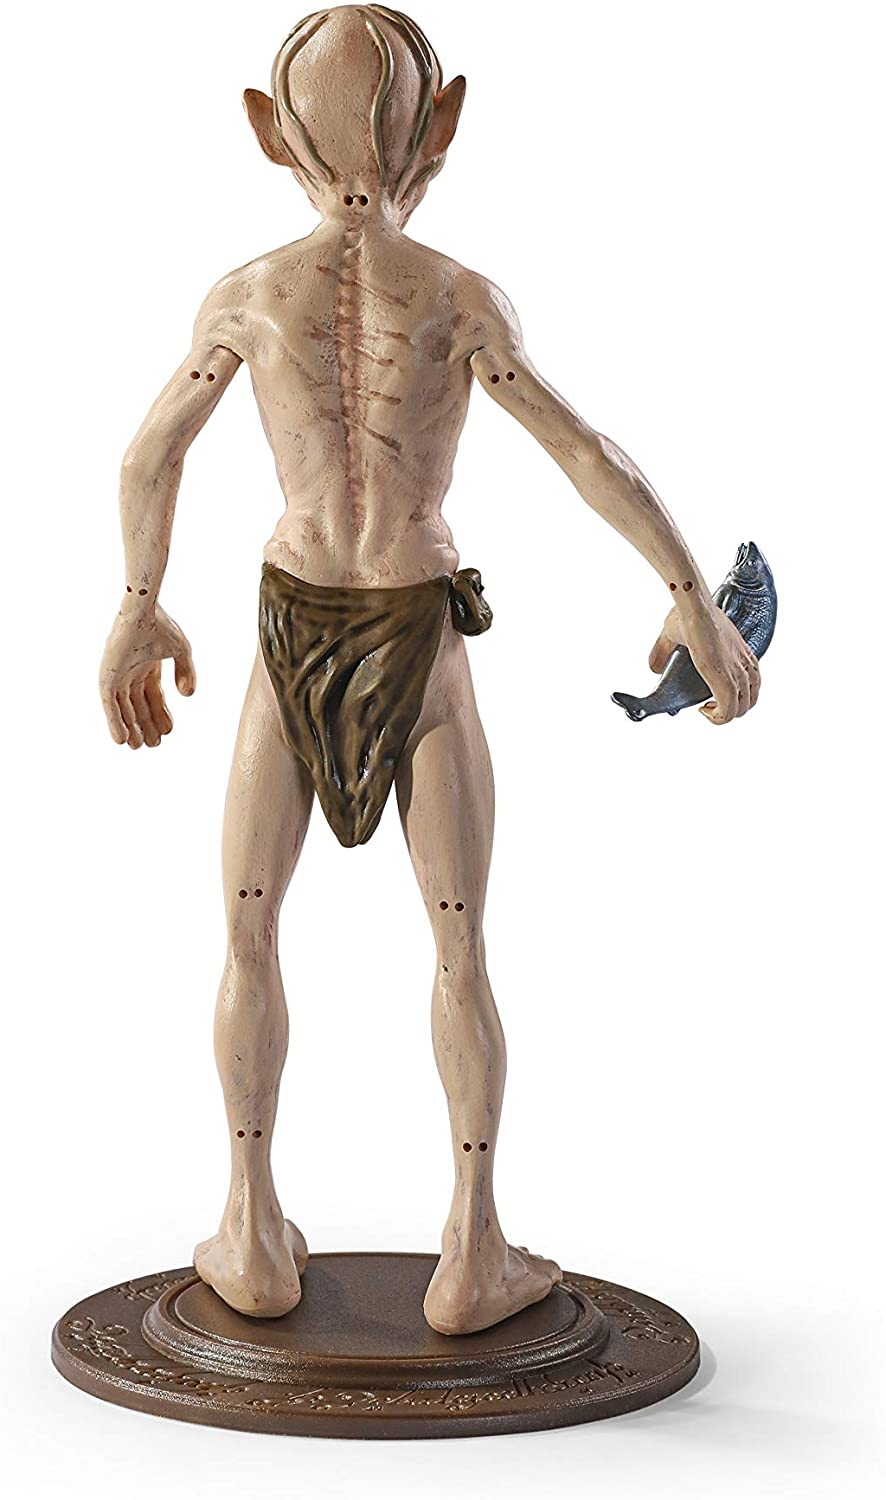 BendyFigs Lord of The Rings Gollum Oficial licenciado